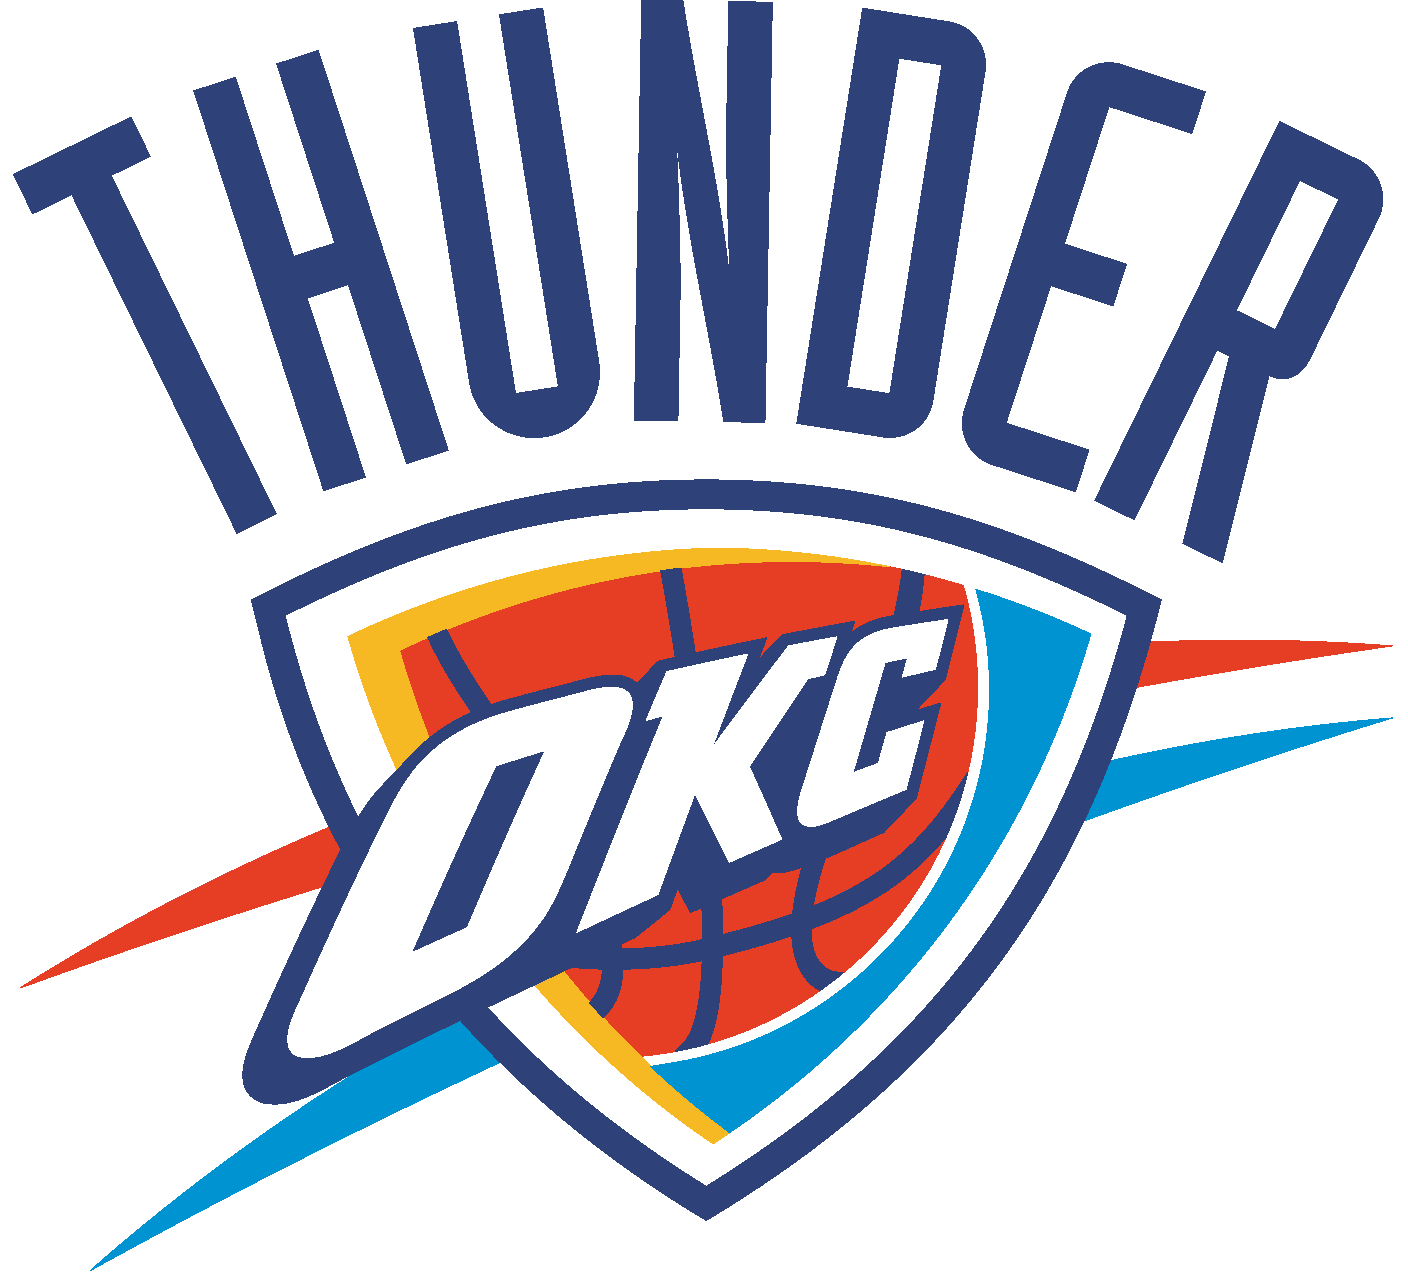 1408x1286 Oklahoma City Thunder Logo Vector Eps Free Download, Logo, Icons